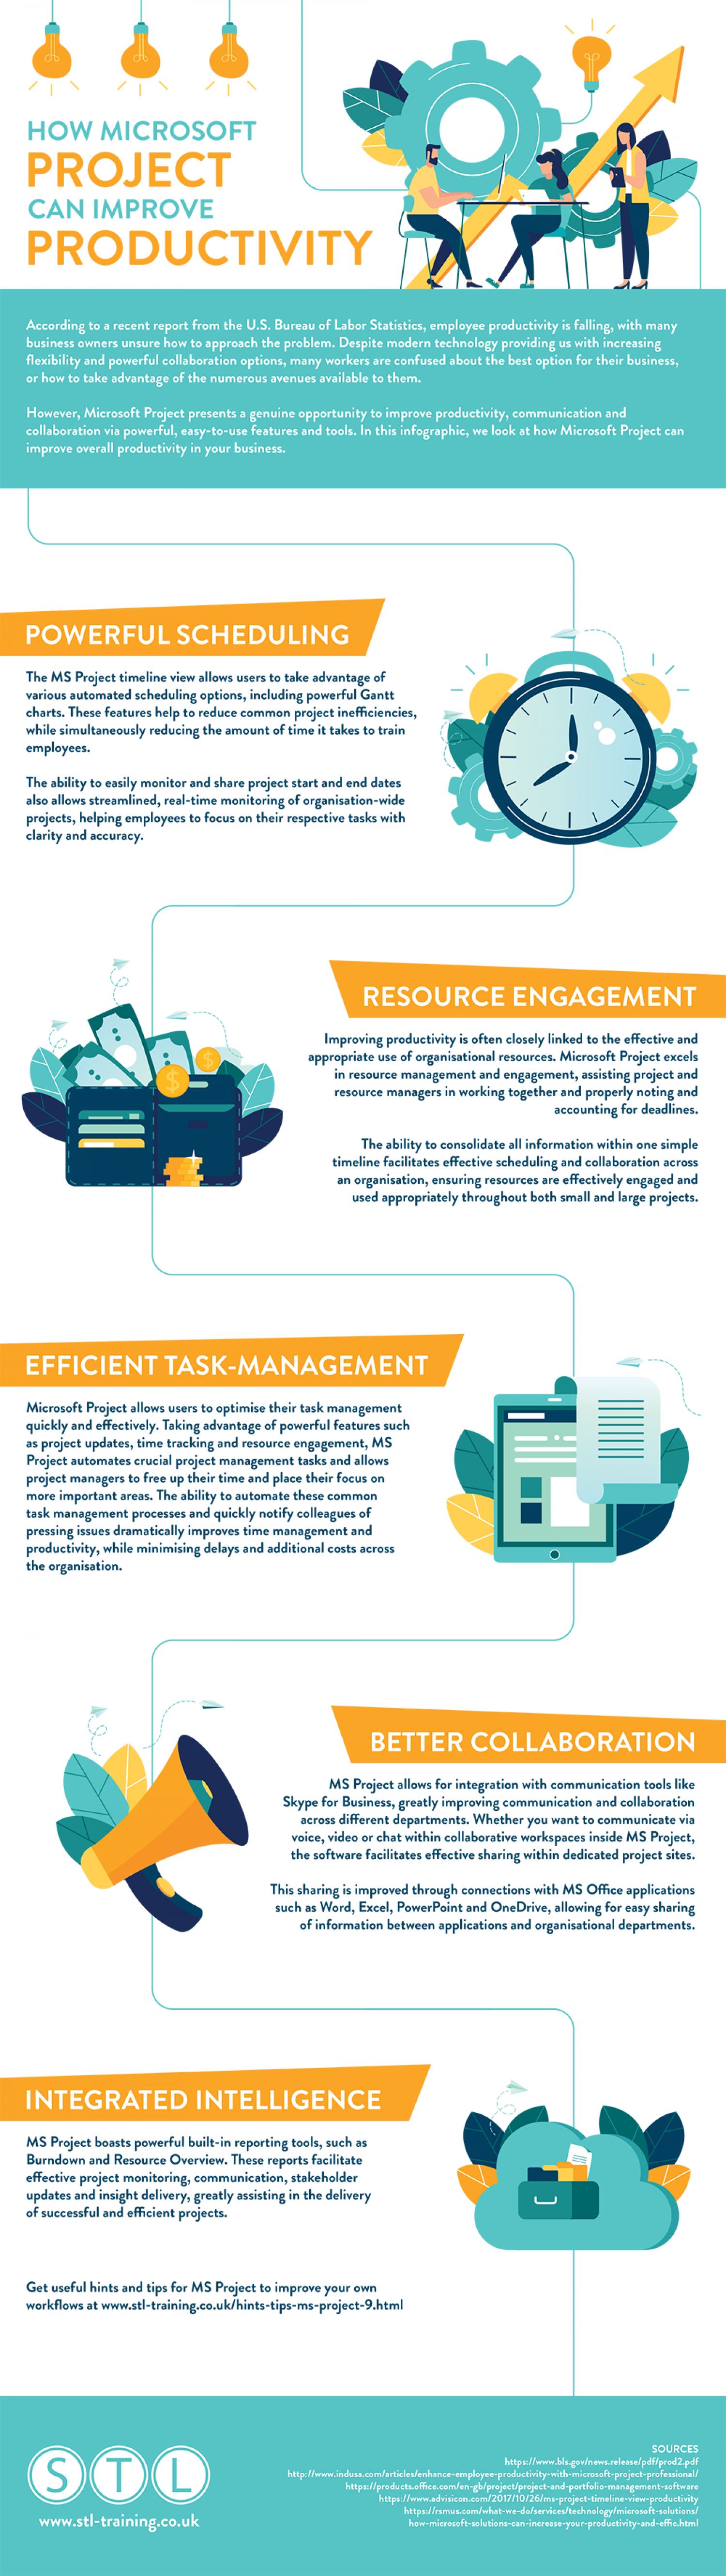 How Microsoft Project Can Improve Productivity Infographic